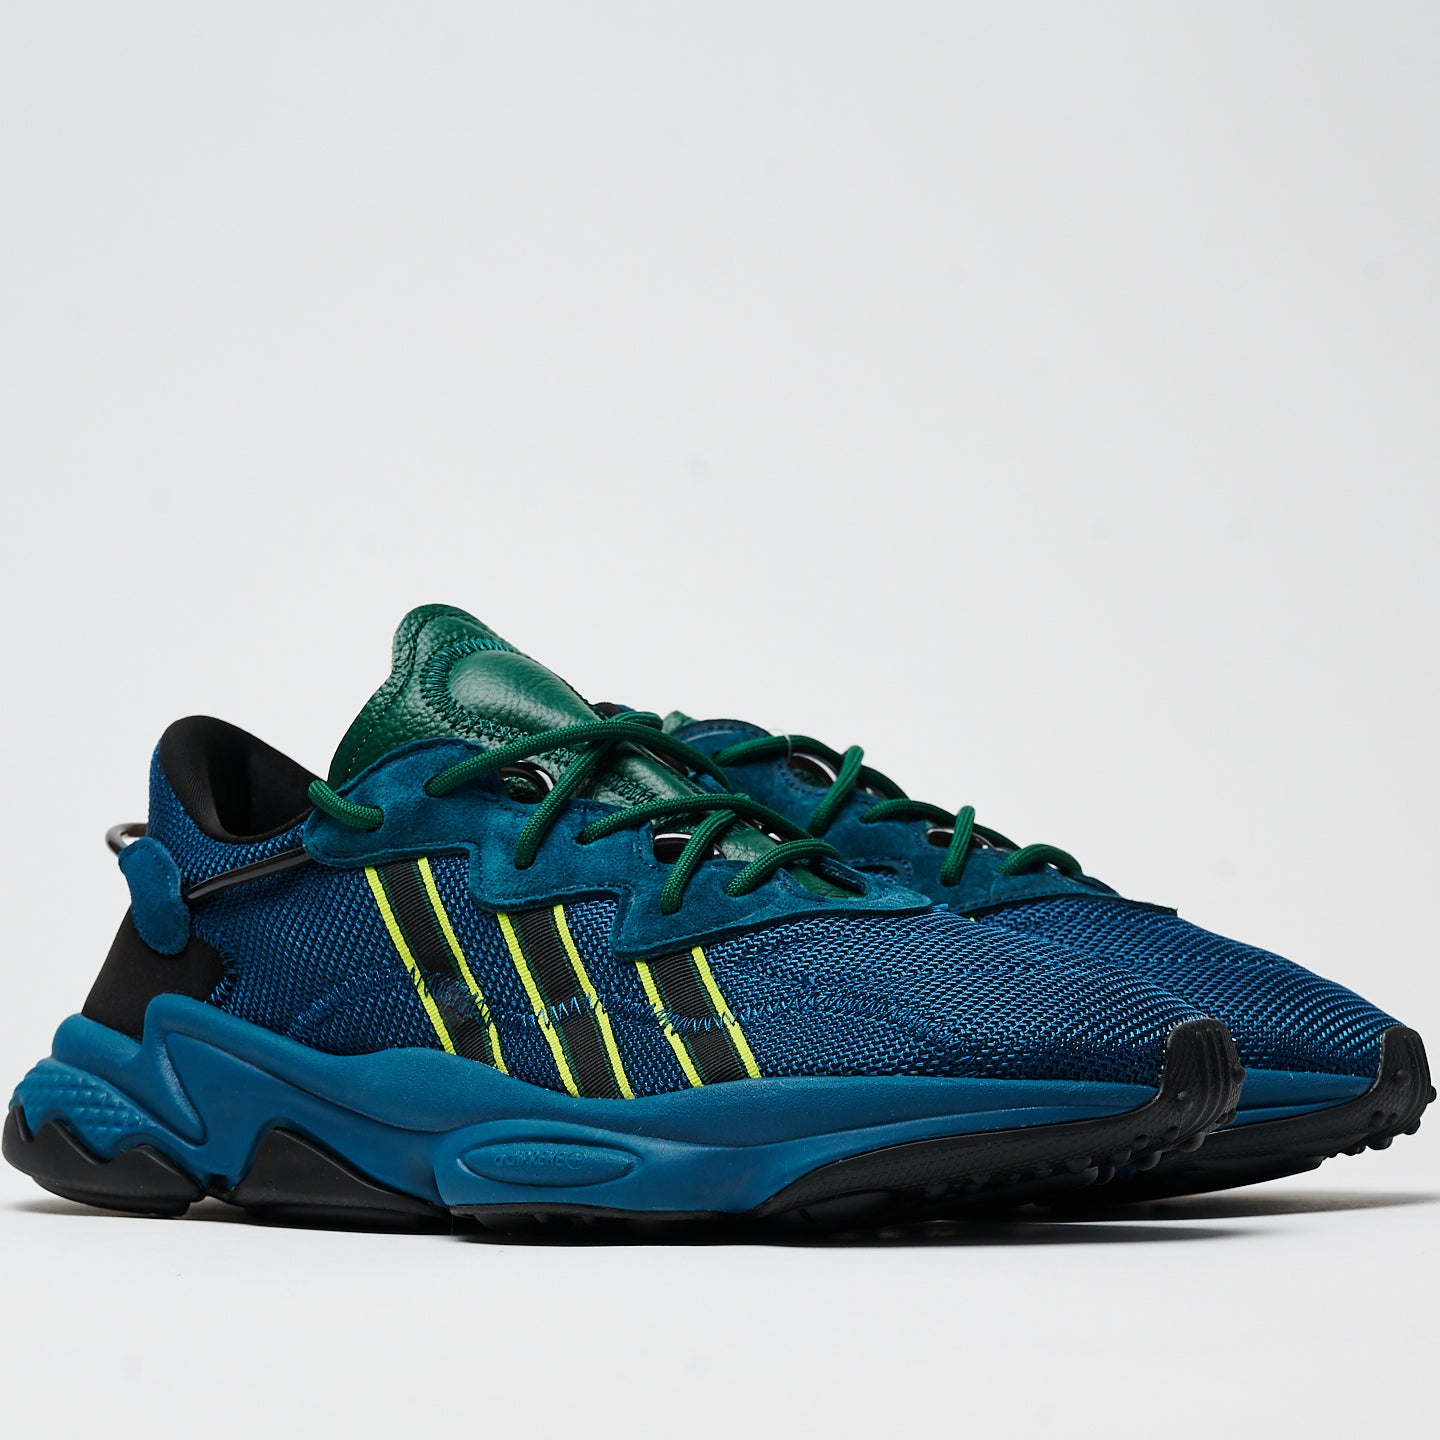 ADIDAS M'S FOOTWEAR PUSHA T OZWEEGO - TECH MINERAL/TECH MINERAL